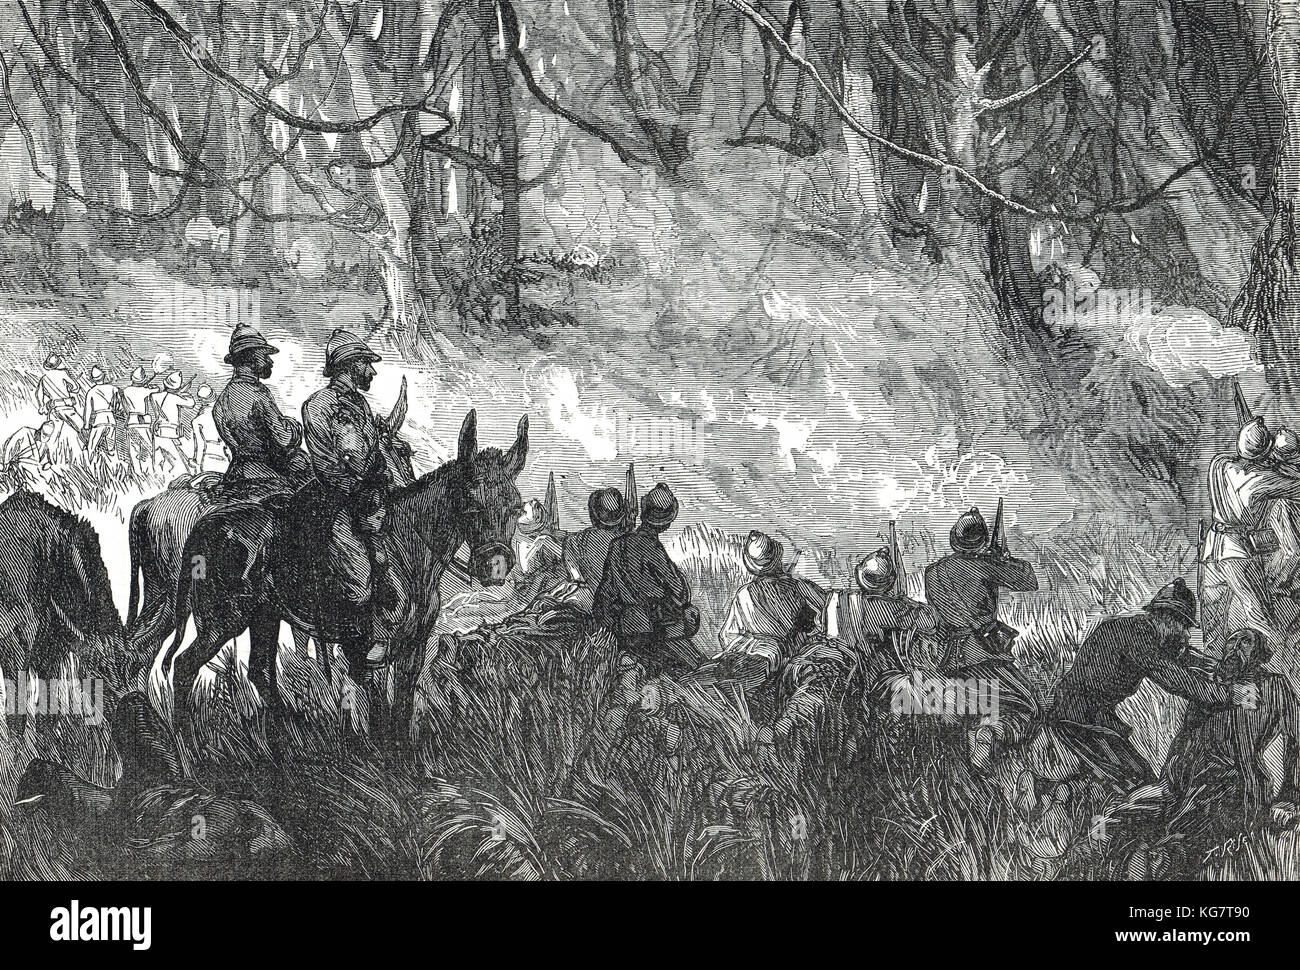 A Forest Skirmish, Third Anglo-Ashanti War, First Ashanti Expedition, 1873-1874 - Stock Image